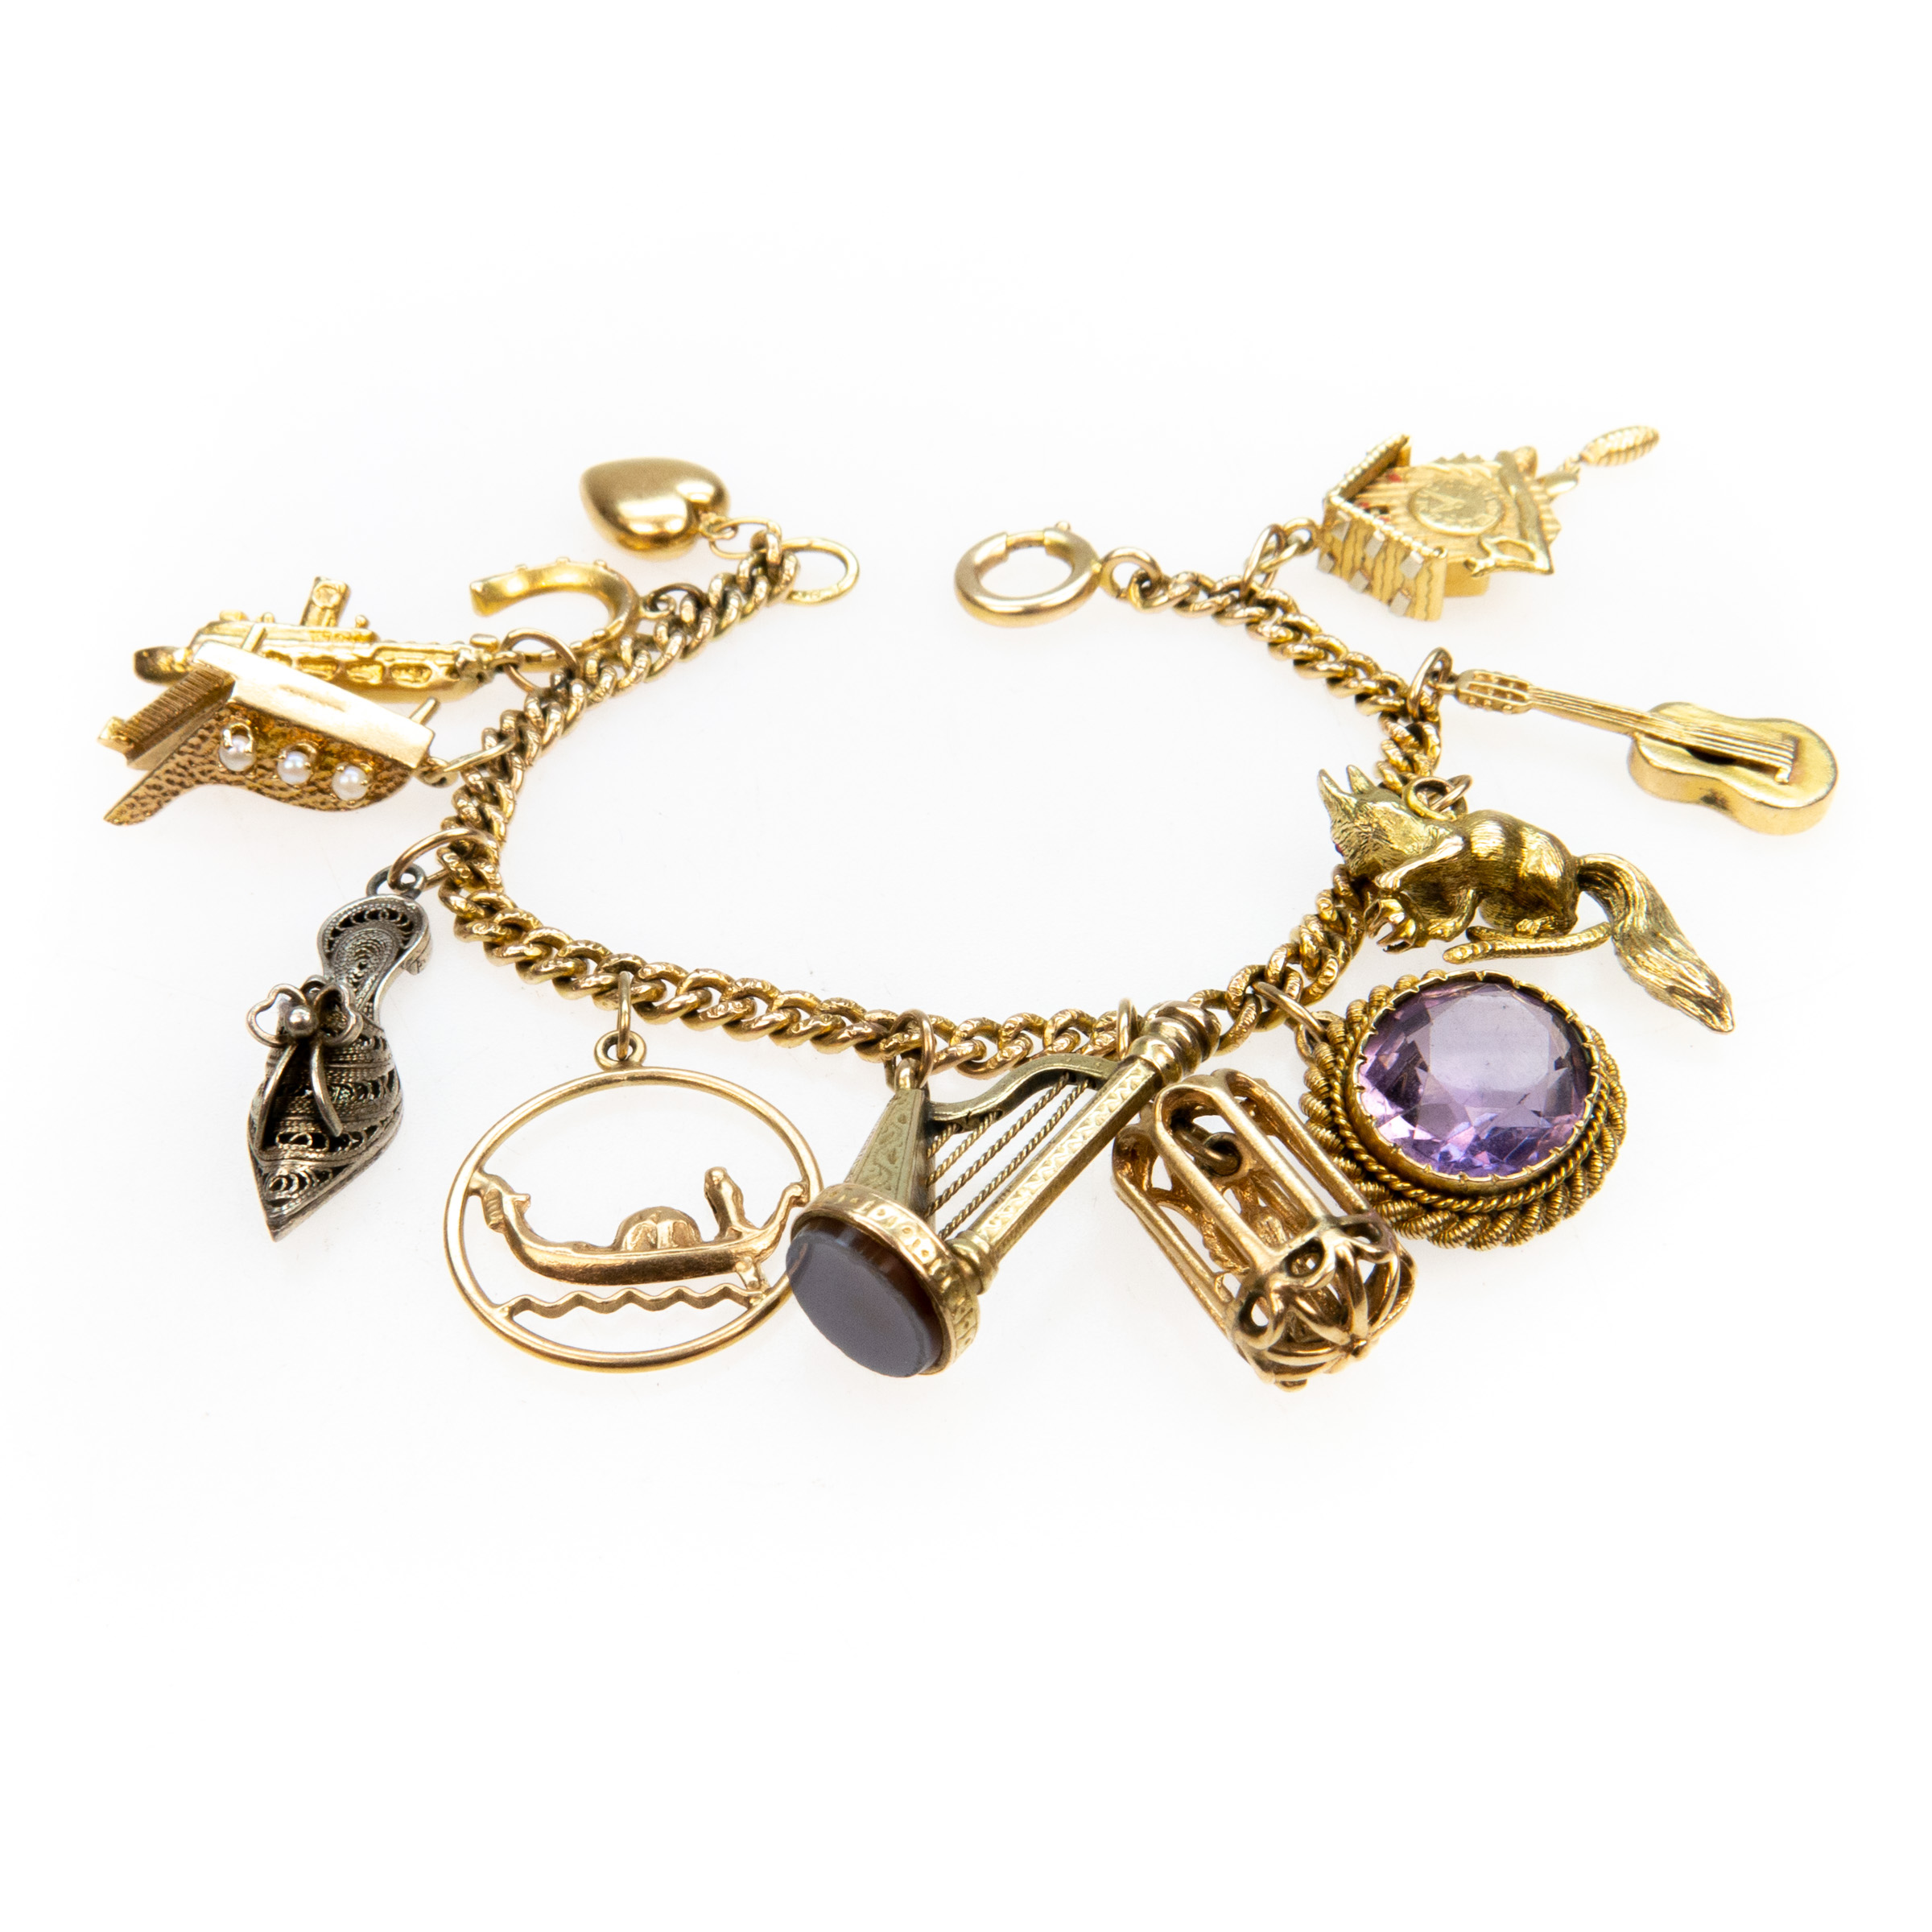 18k Yellow Gold Curb Link Charm Bracelet